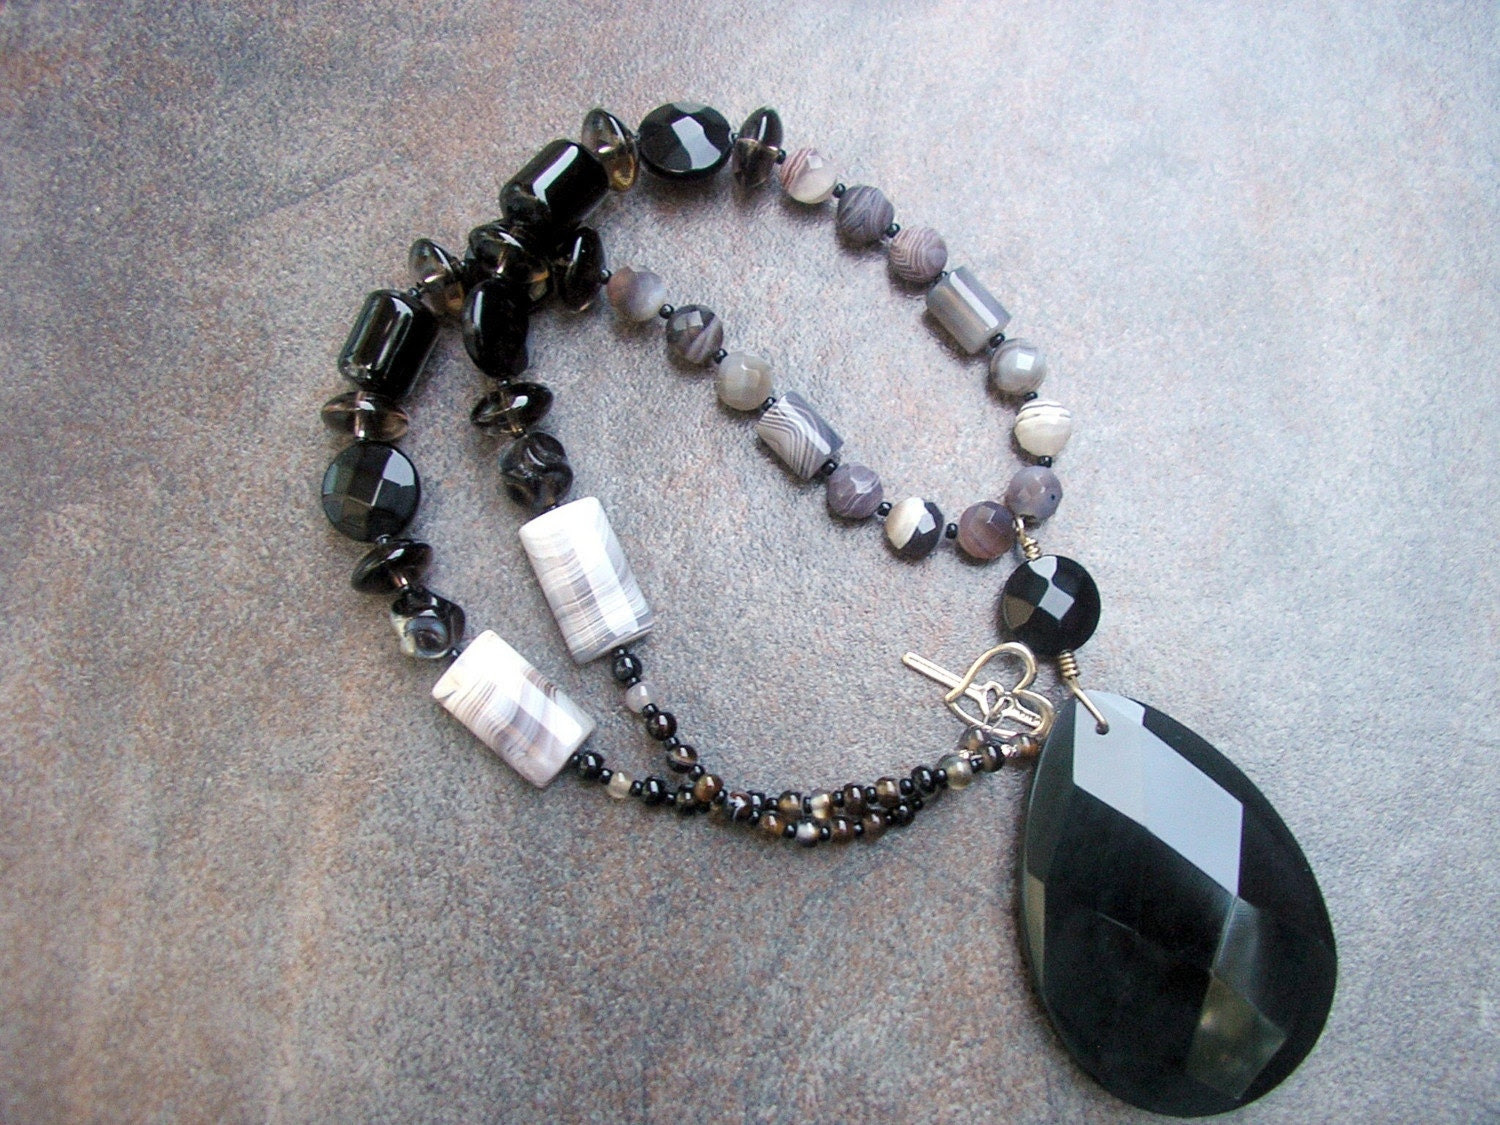 Elegant Black Necklace featuring Black Obsidian Pendant